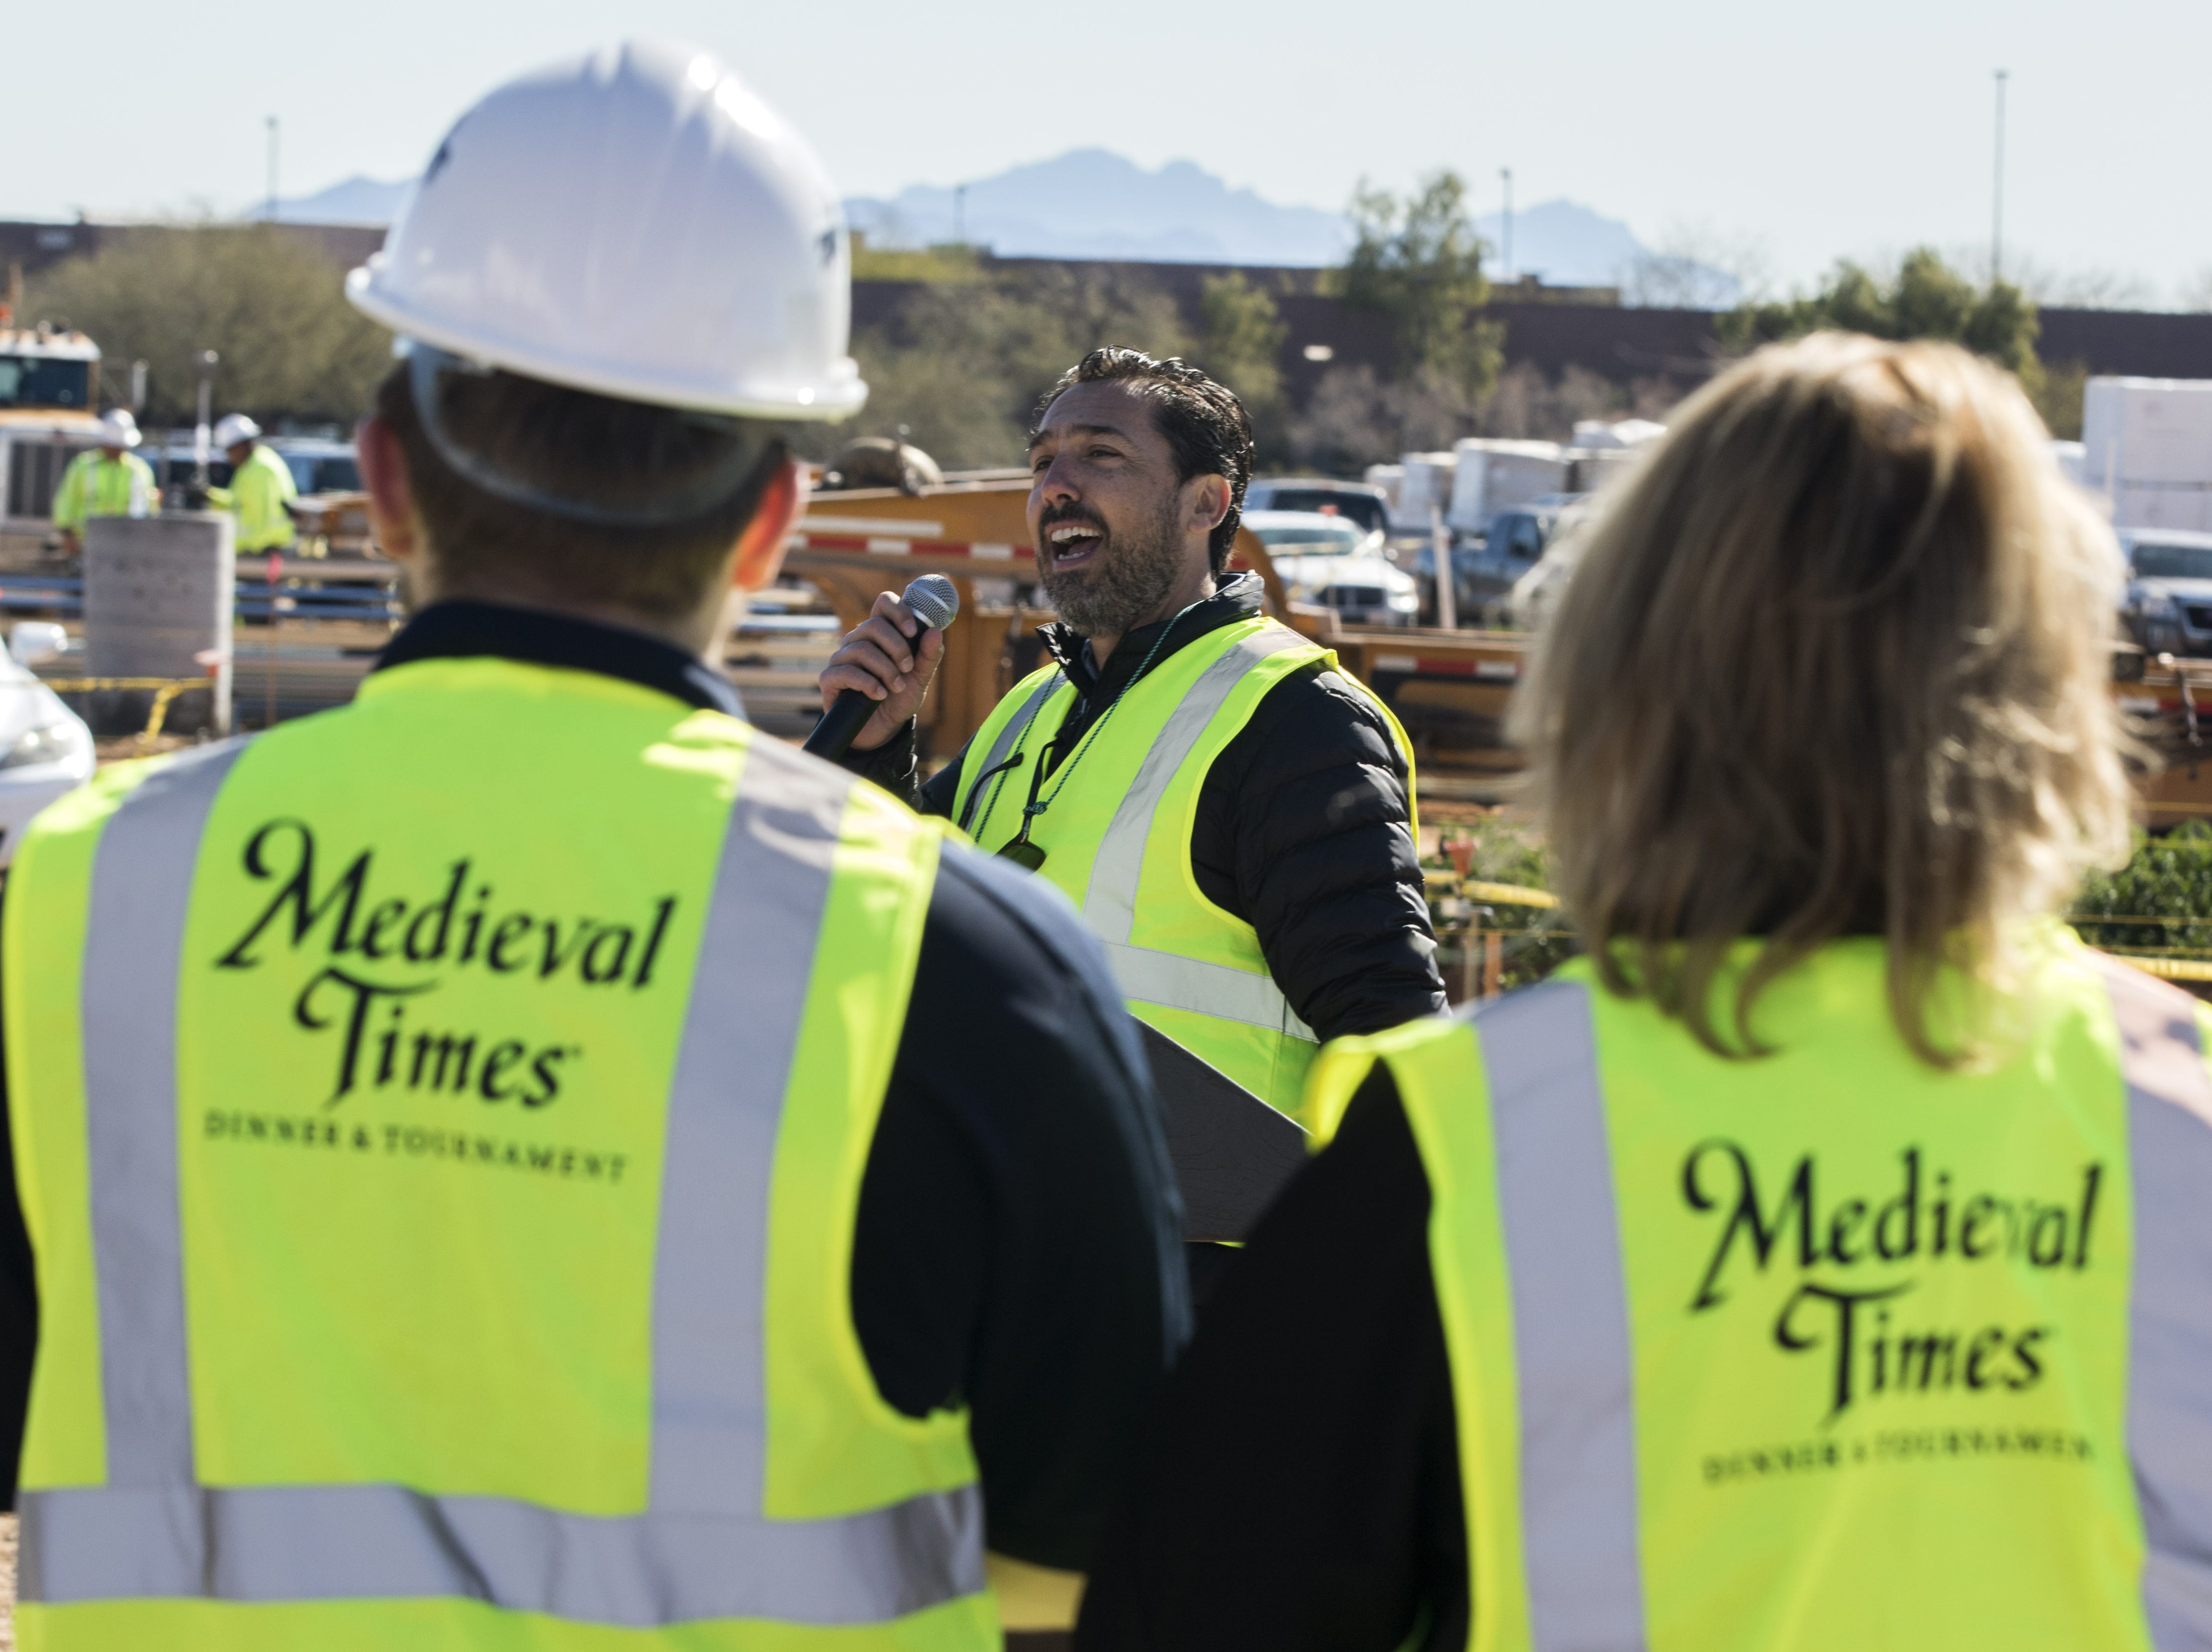 President and CEO of Medieval Times Perico Montaner addresses a crowd on hand to watch the final piece of steel being placed on to the castle coming to the Salt River Pima-Maricopa Indian Community's Talking Stick Entertainment District in Scottsdale, Feb, 20, 2019.